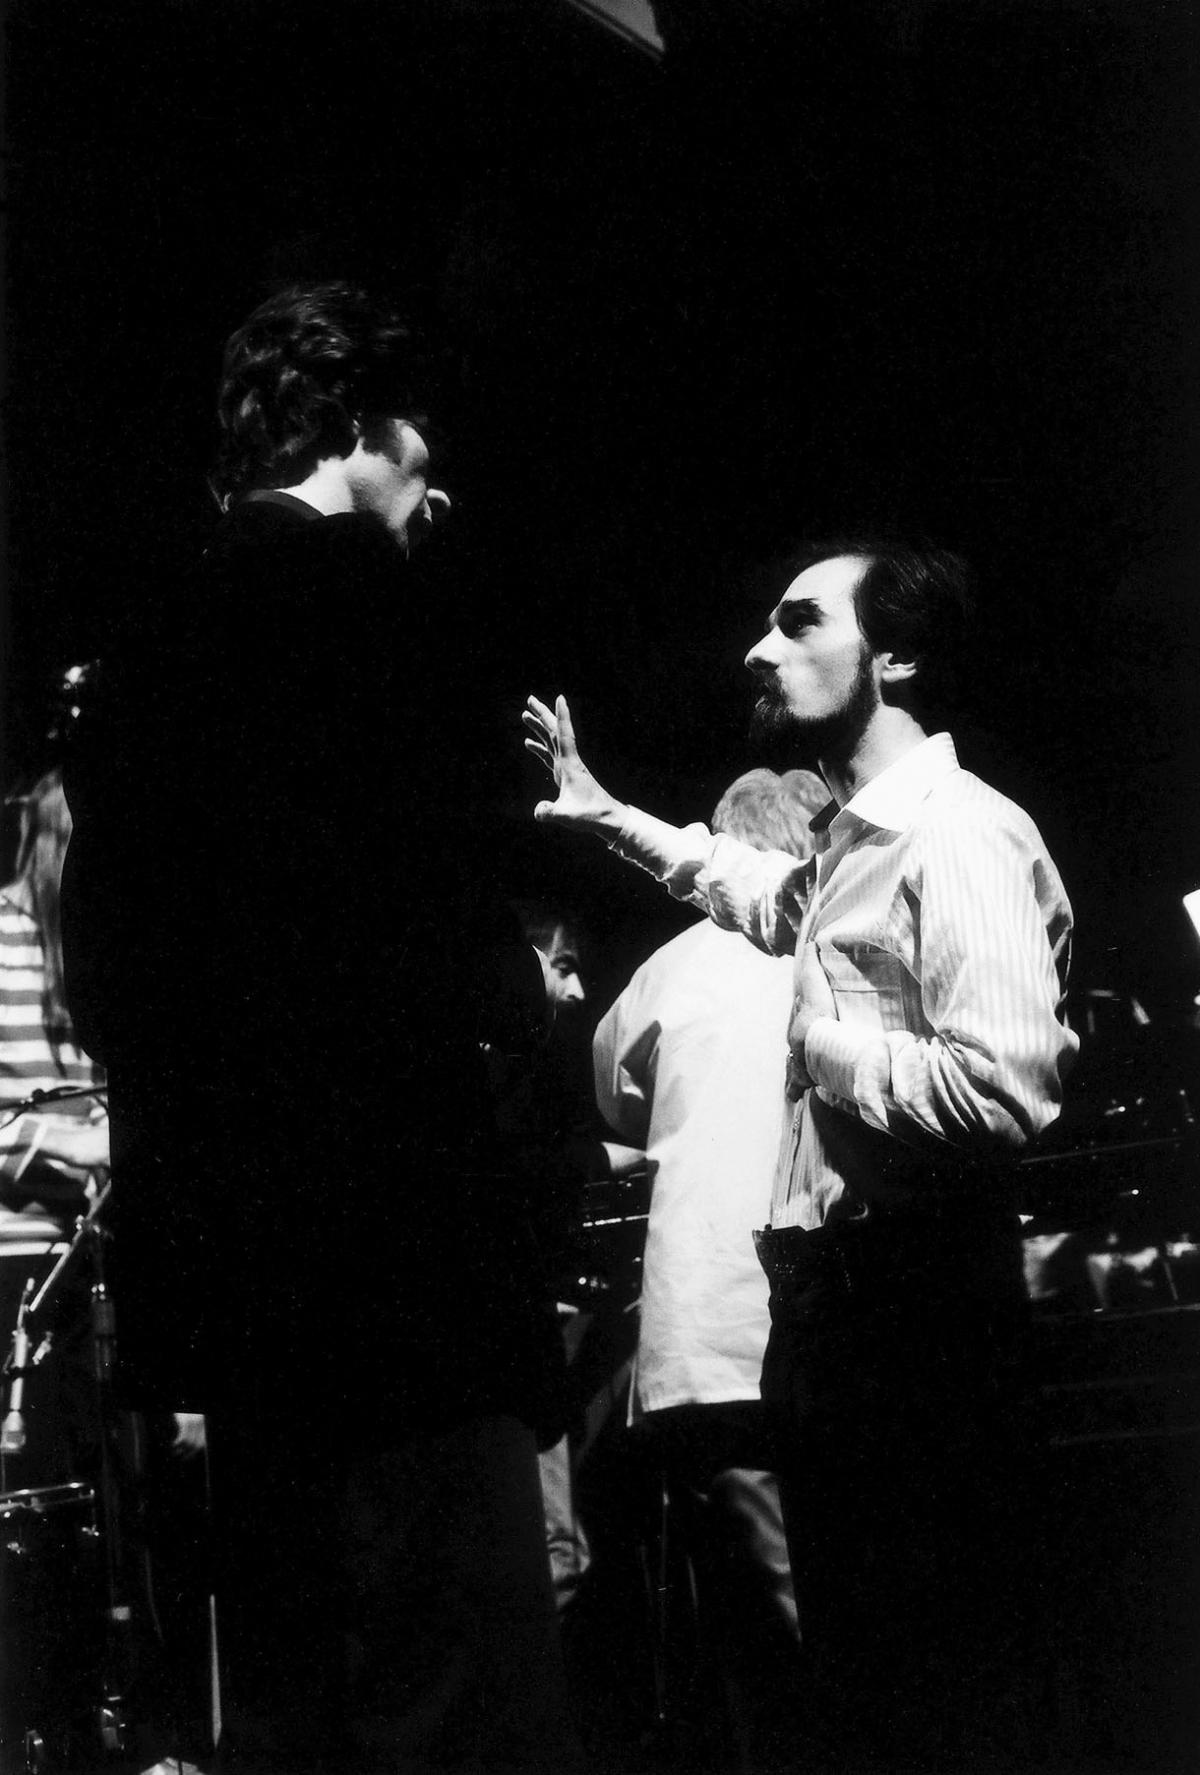 Scorsese and Robertson talk onstage during filming